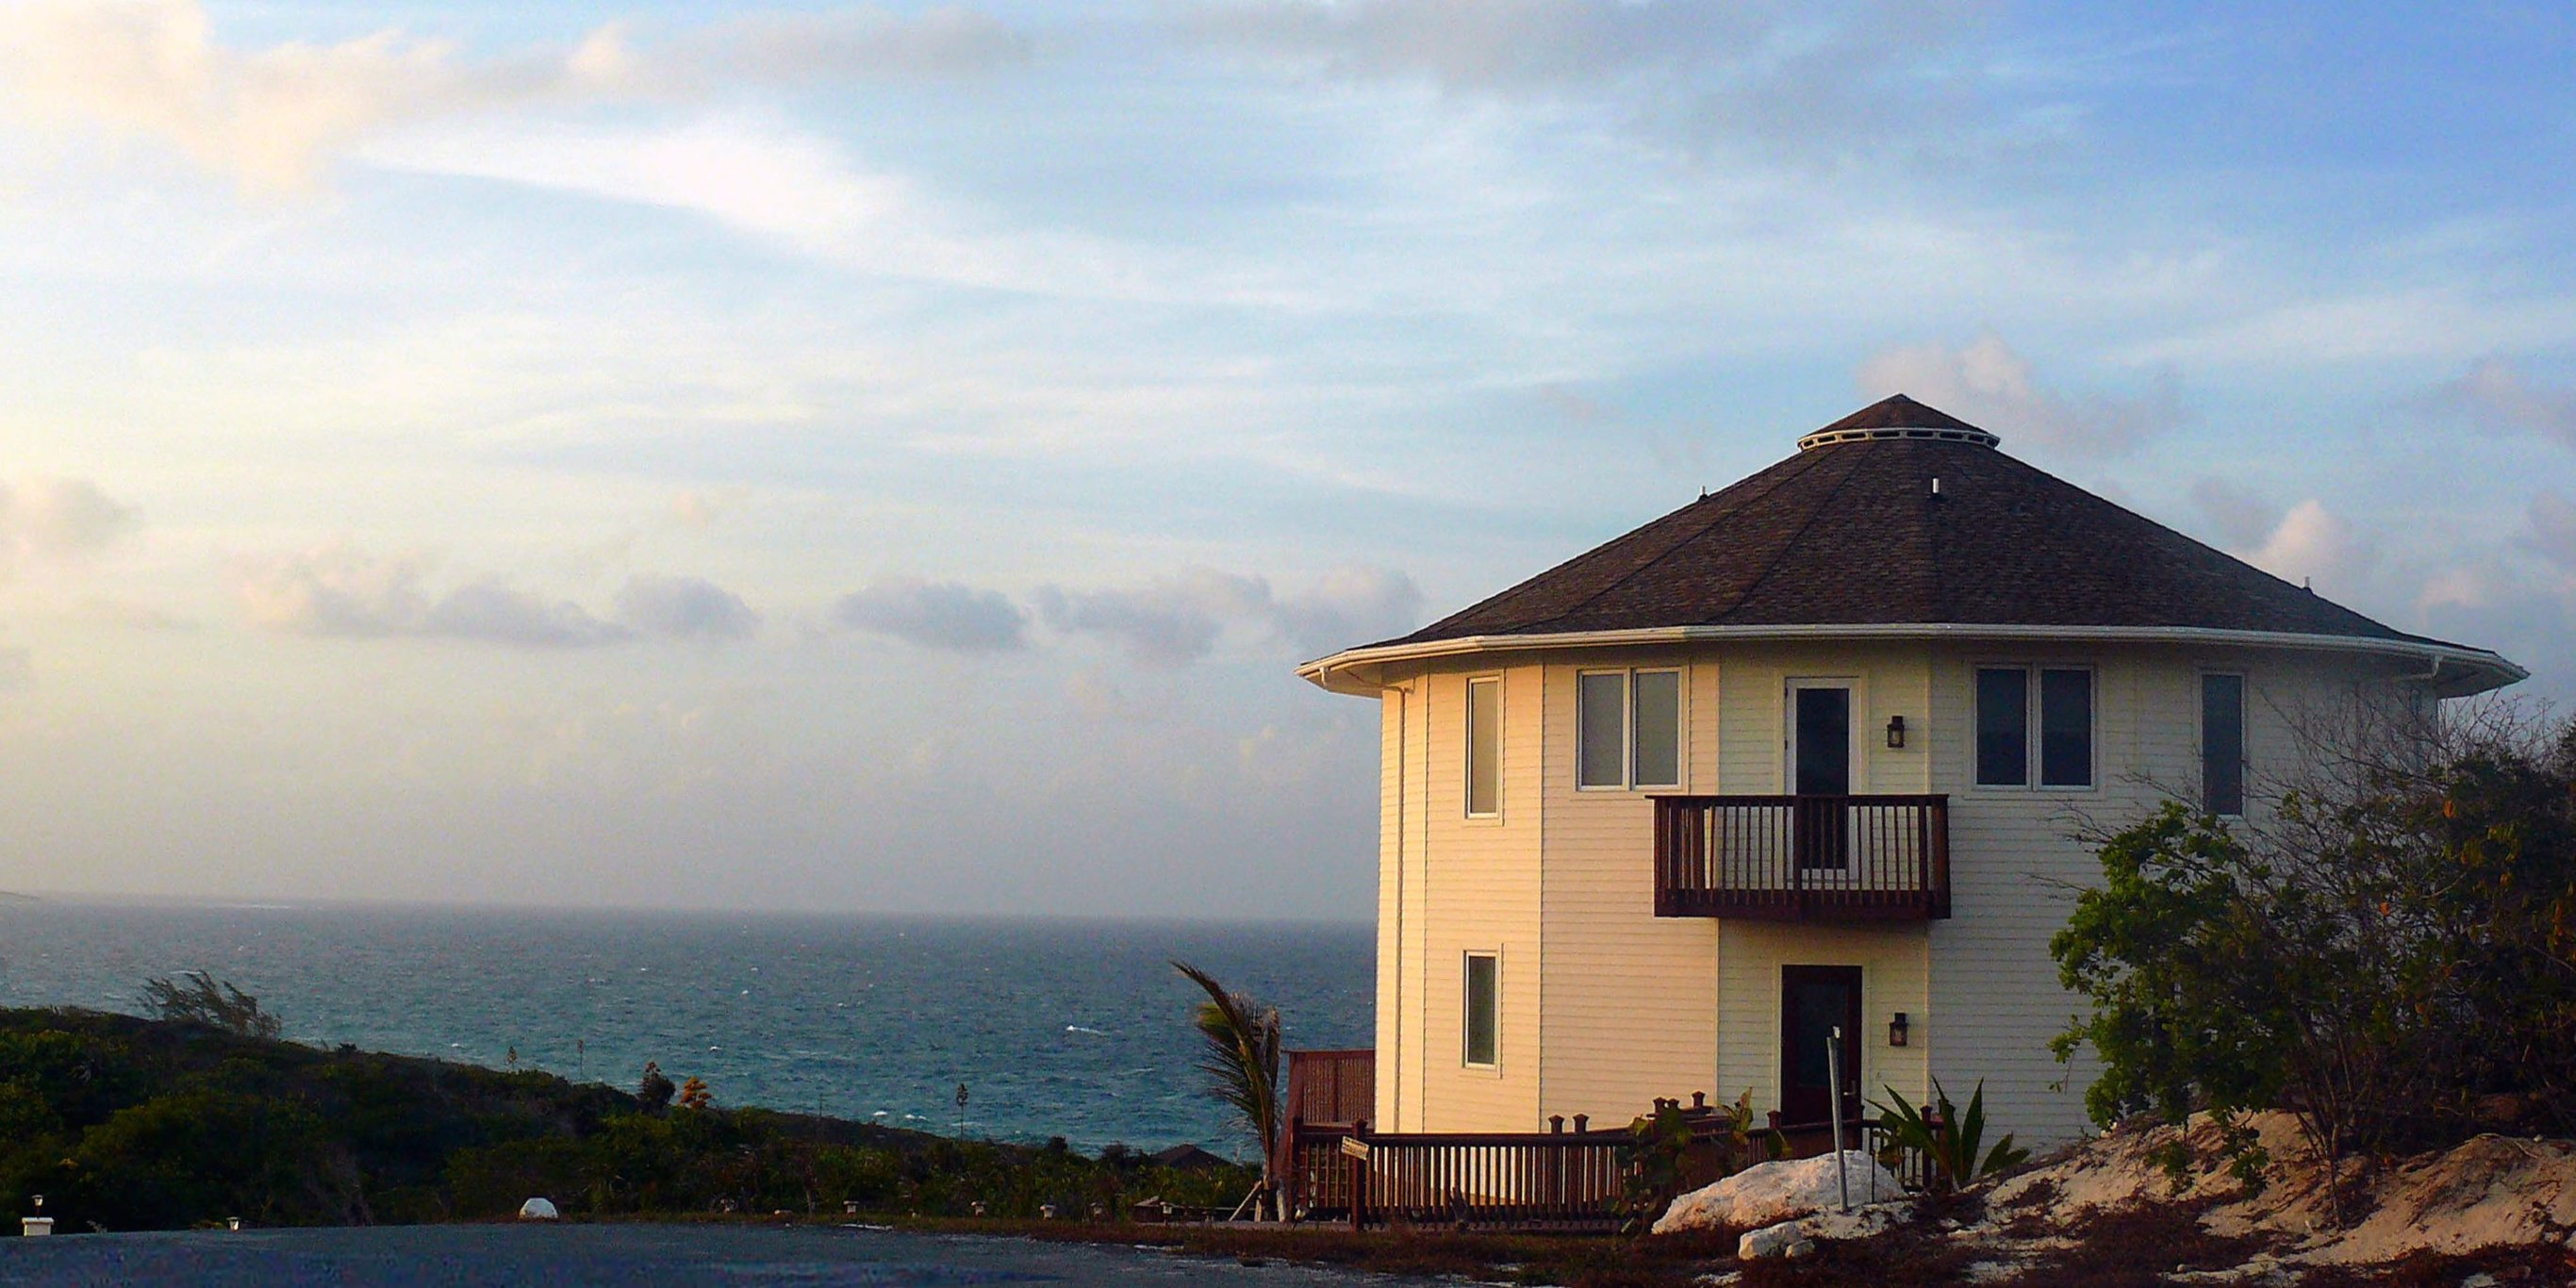 These round homes have survived every major hurricane in the last 50 years, including Hurricane Dorian in the Bahamas. Take a look.